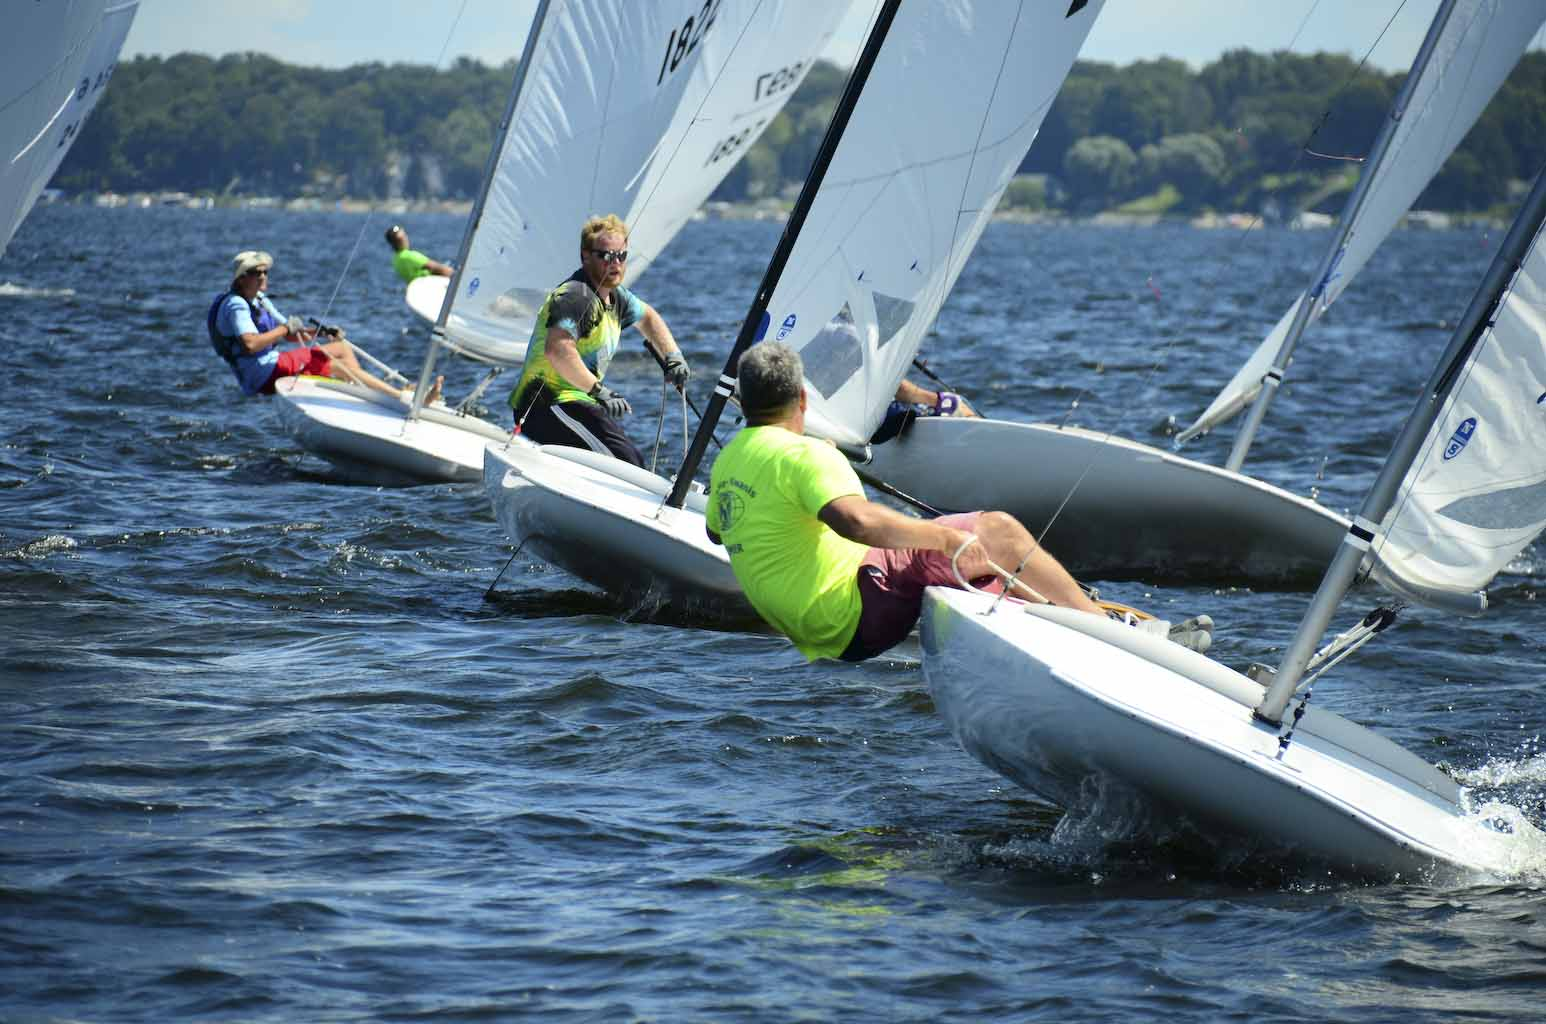 Good wind arrives on First day of WMYA Championship Regatta on White Lake [VIDEO]